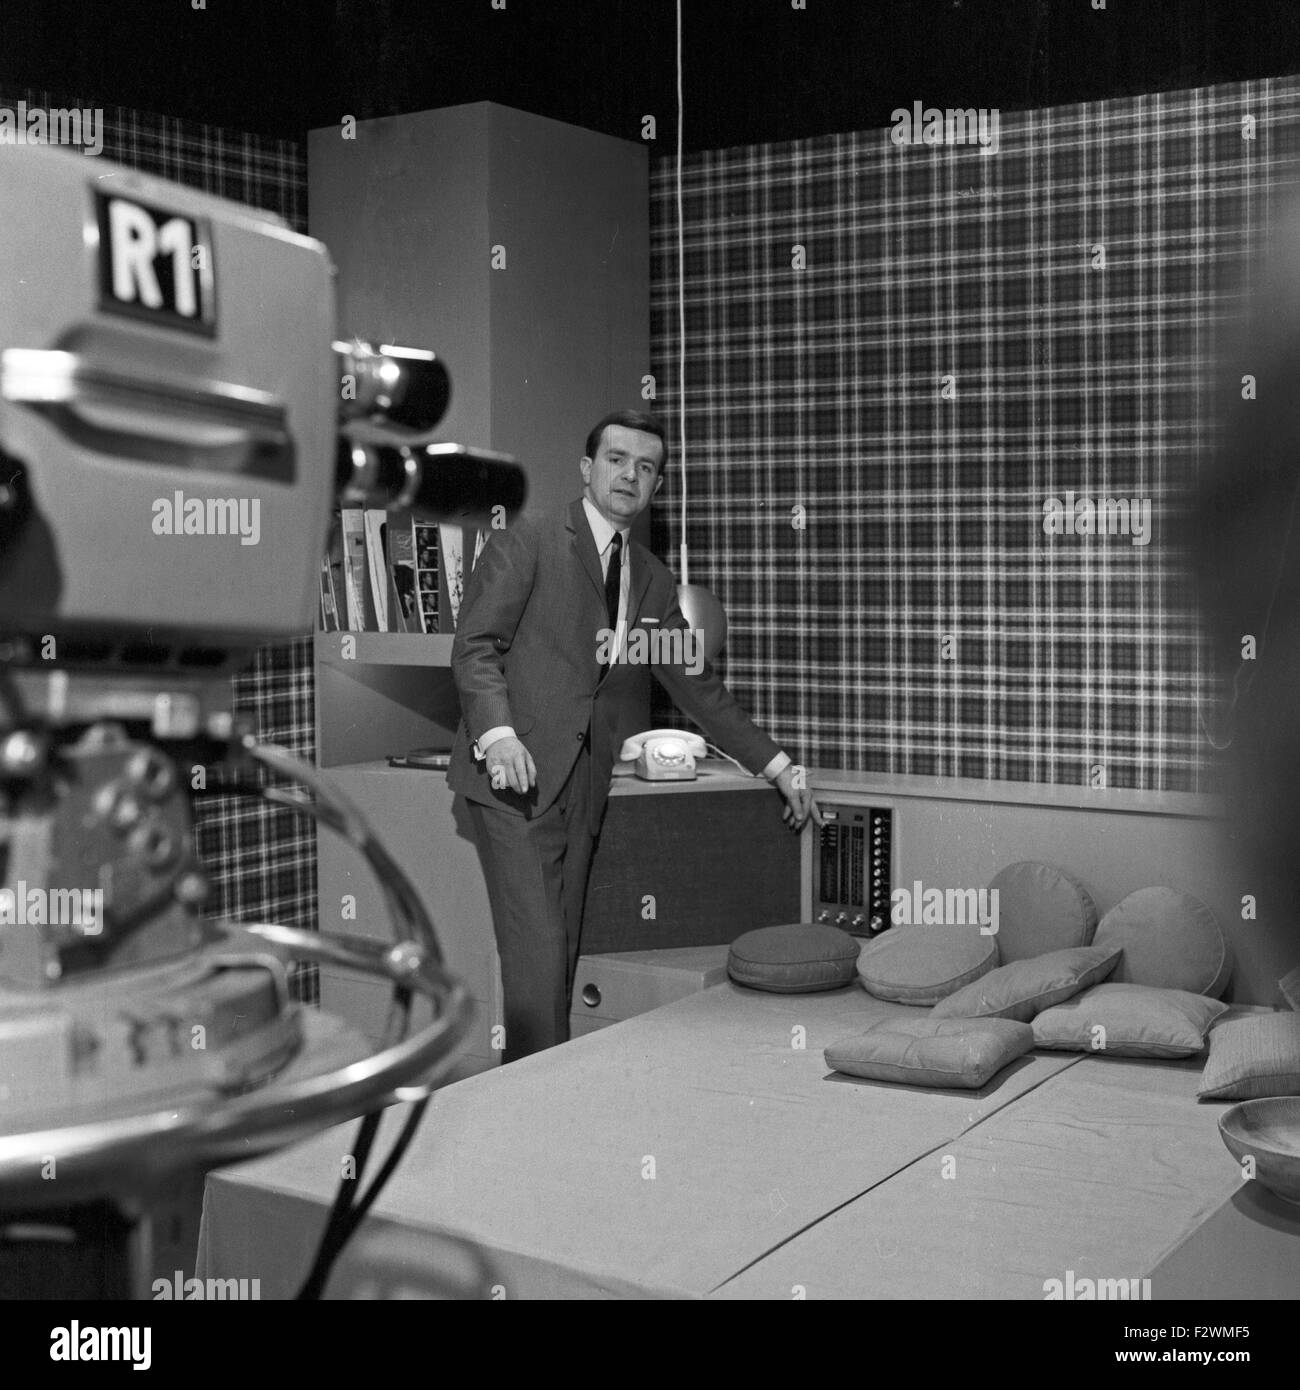 Tv by telefunken stock photos tv by telefunken stock for Wmf offenbach